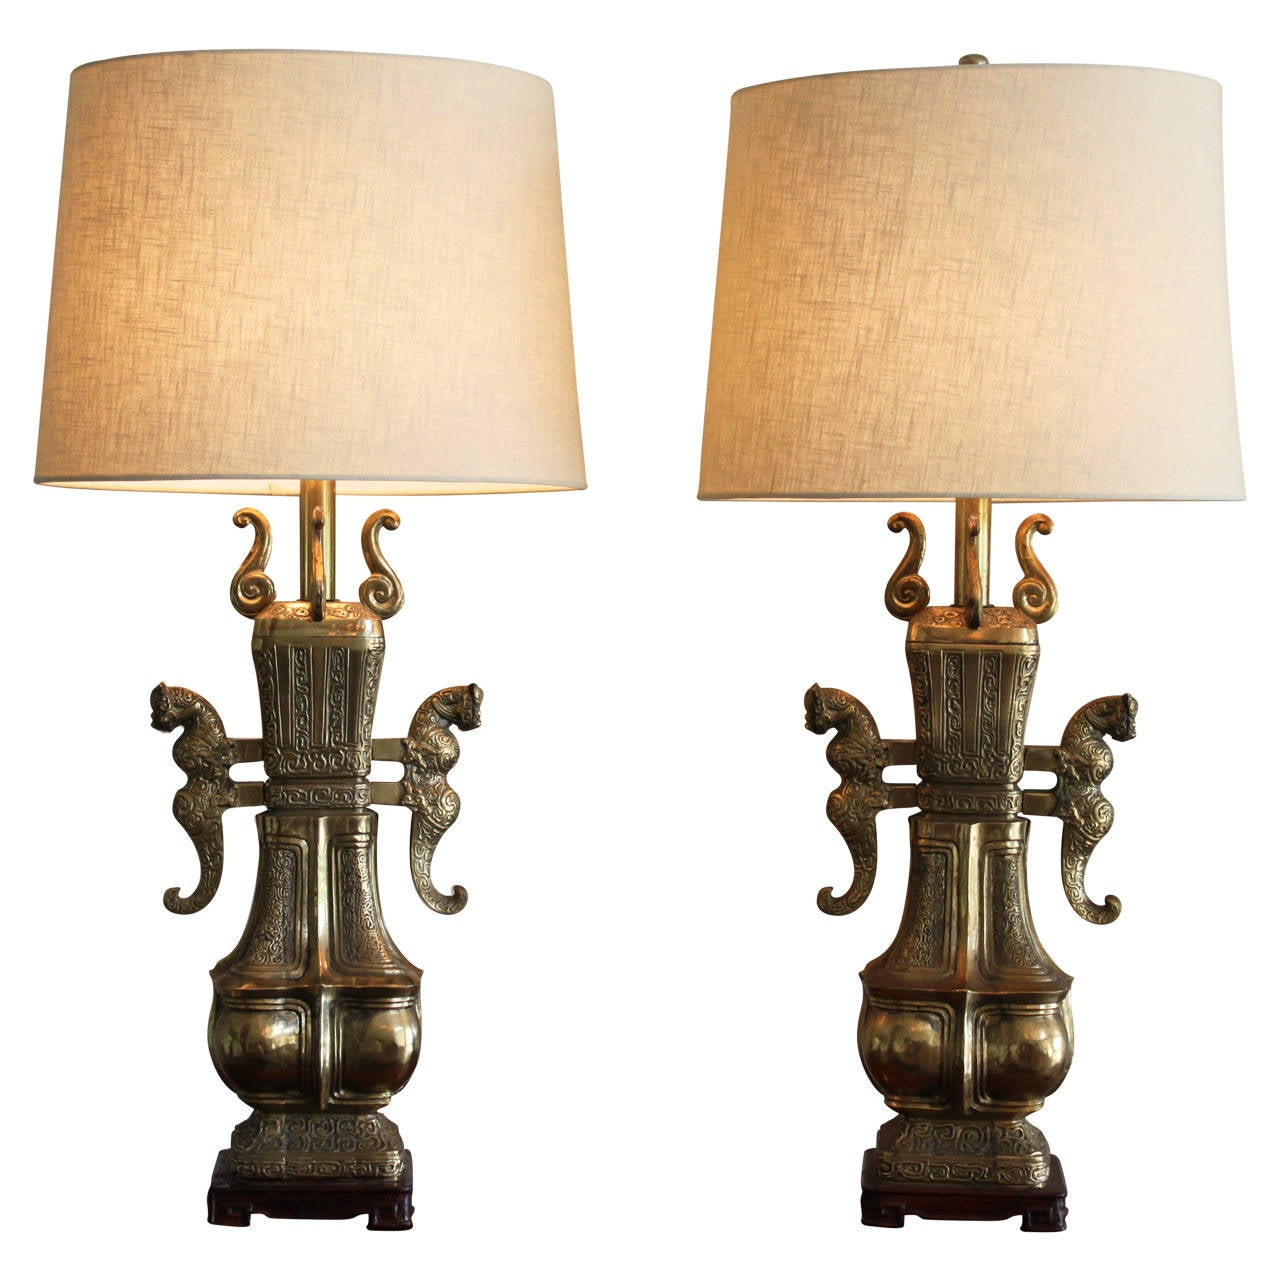 Pair of Monumental Brass Lamps in the Style of Marbro, circa 1970s